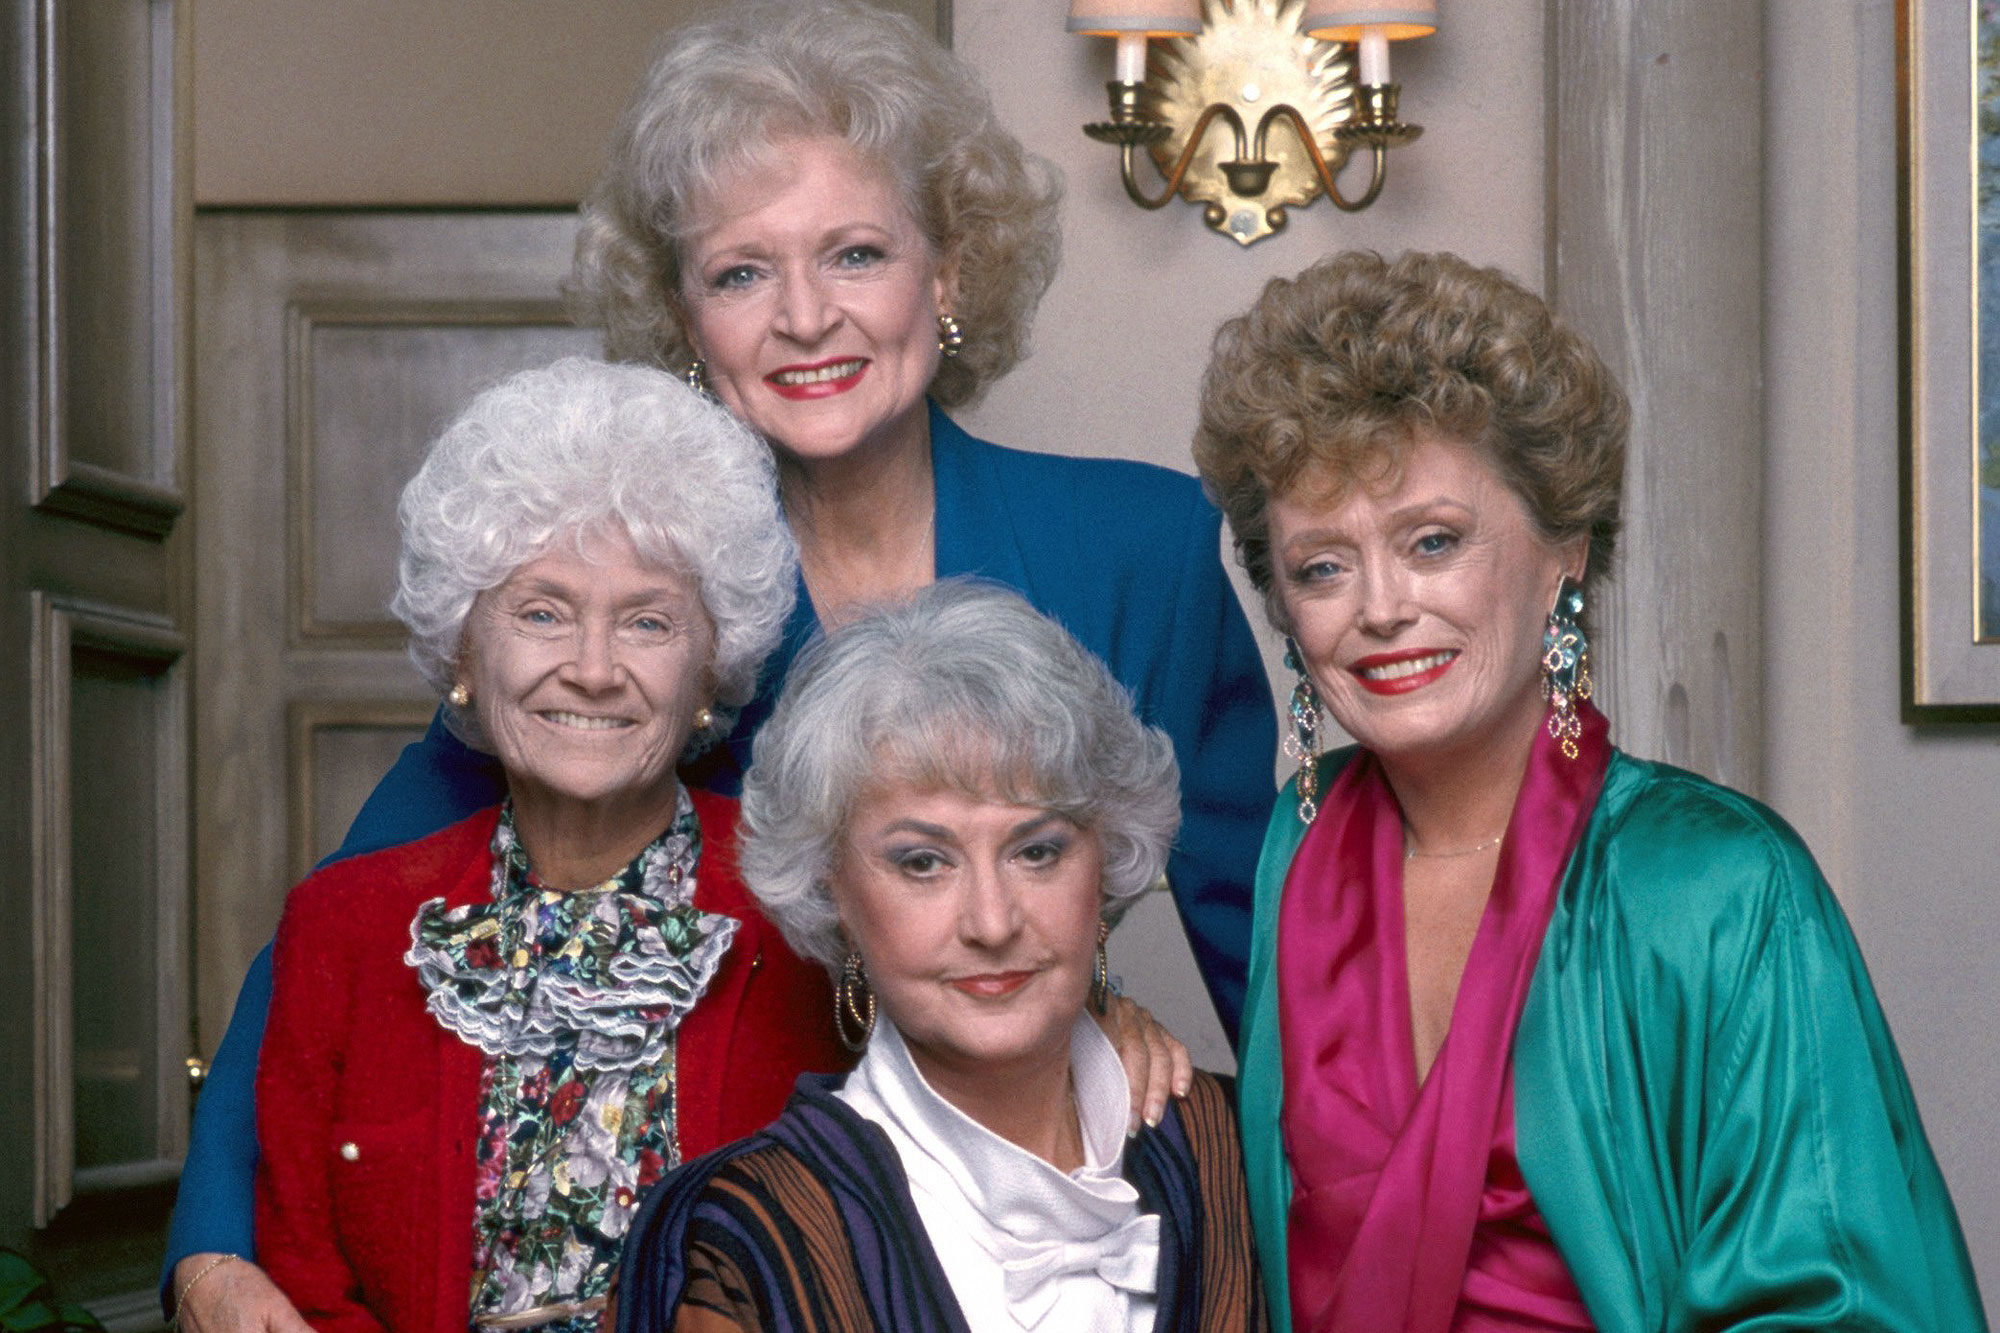 Get a First Look Inside the New Golden Girls Café